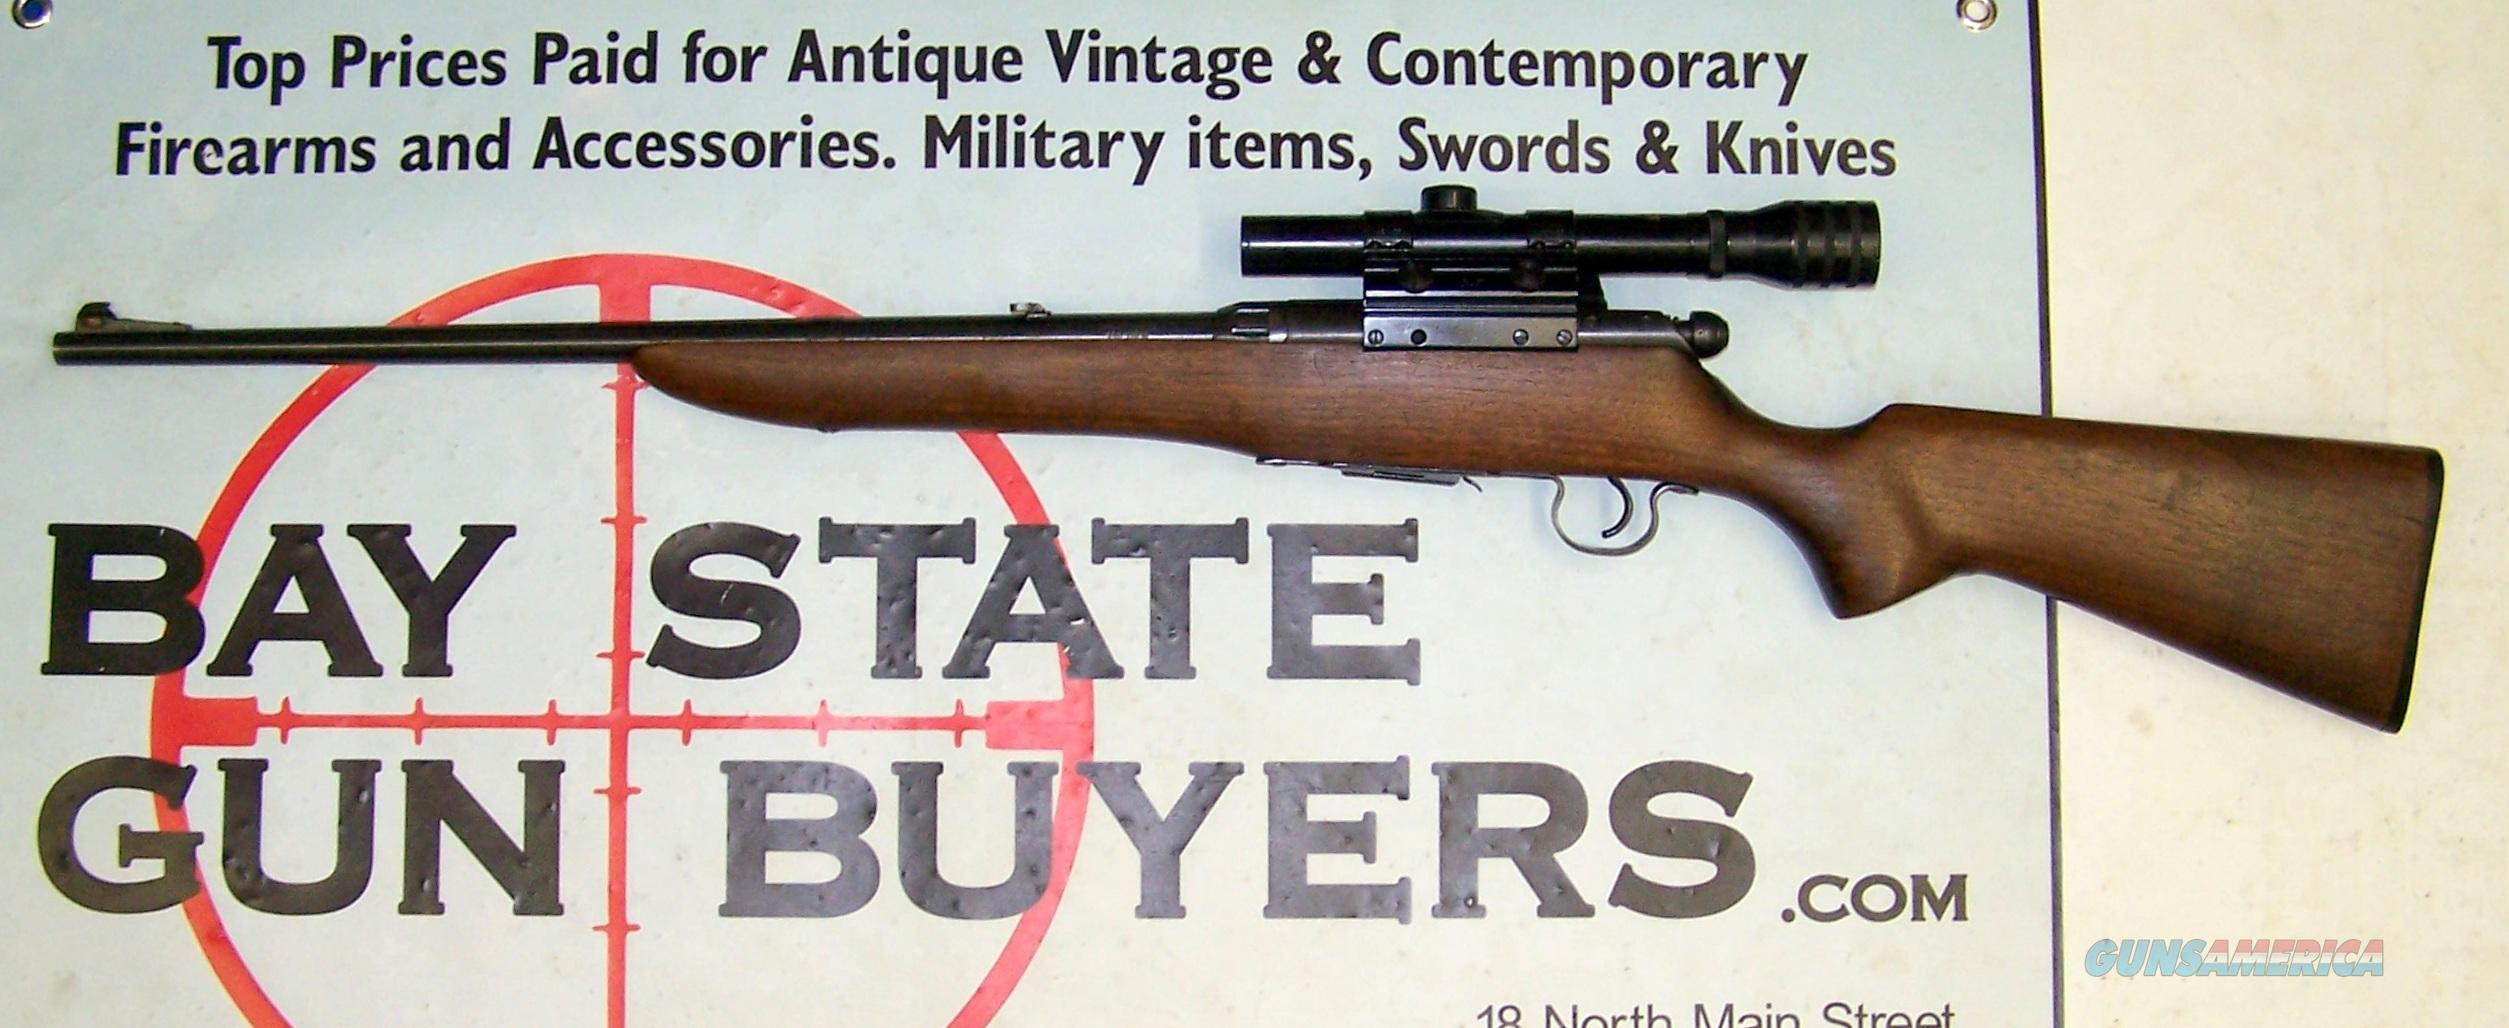 Savage Model 23D Sporter bolt action rifle - SCARCE SAVAGE SCOPE  Guns > Rifles > Savage Rifles > Standard Bolt Action > Sporting